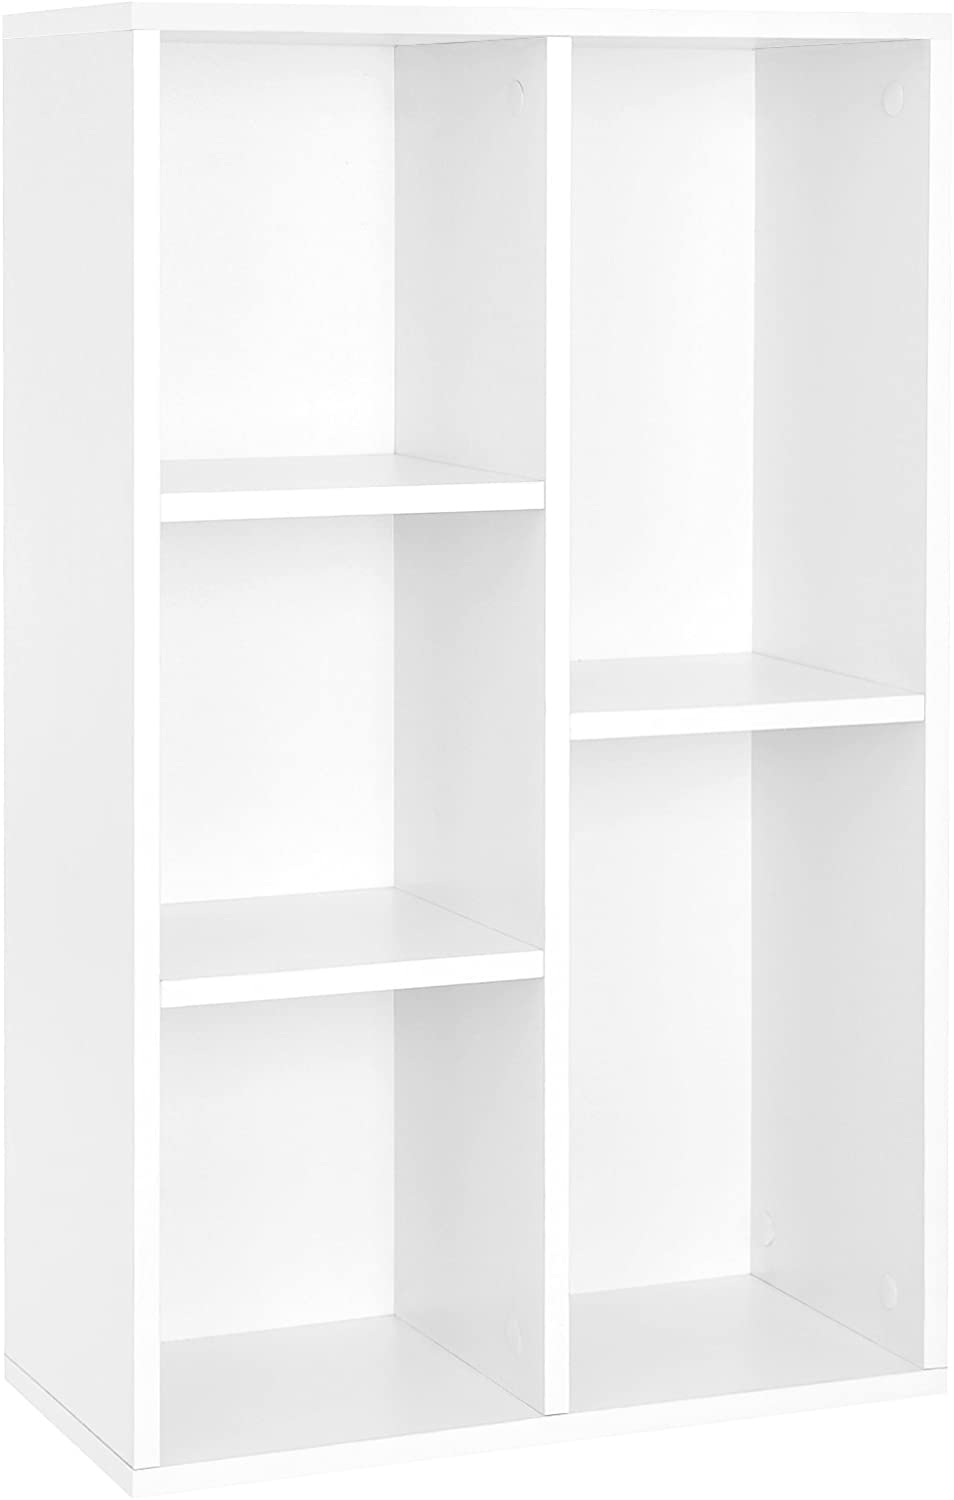 VASAGLE Wooden 5-grid Bookcase, File Organiser and Floor Standing Bookshelf Rack for Living Room, Bedroom, Nursery and Office, Holds Books and DVDs, 50 x 24 x 80 cm (W x D x H), White LBC25WT